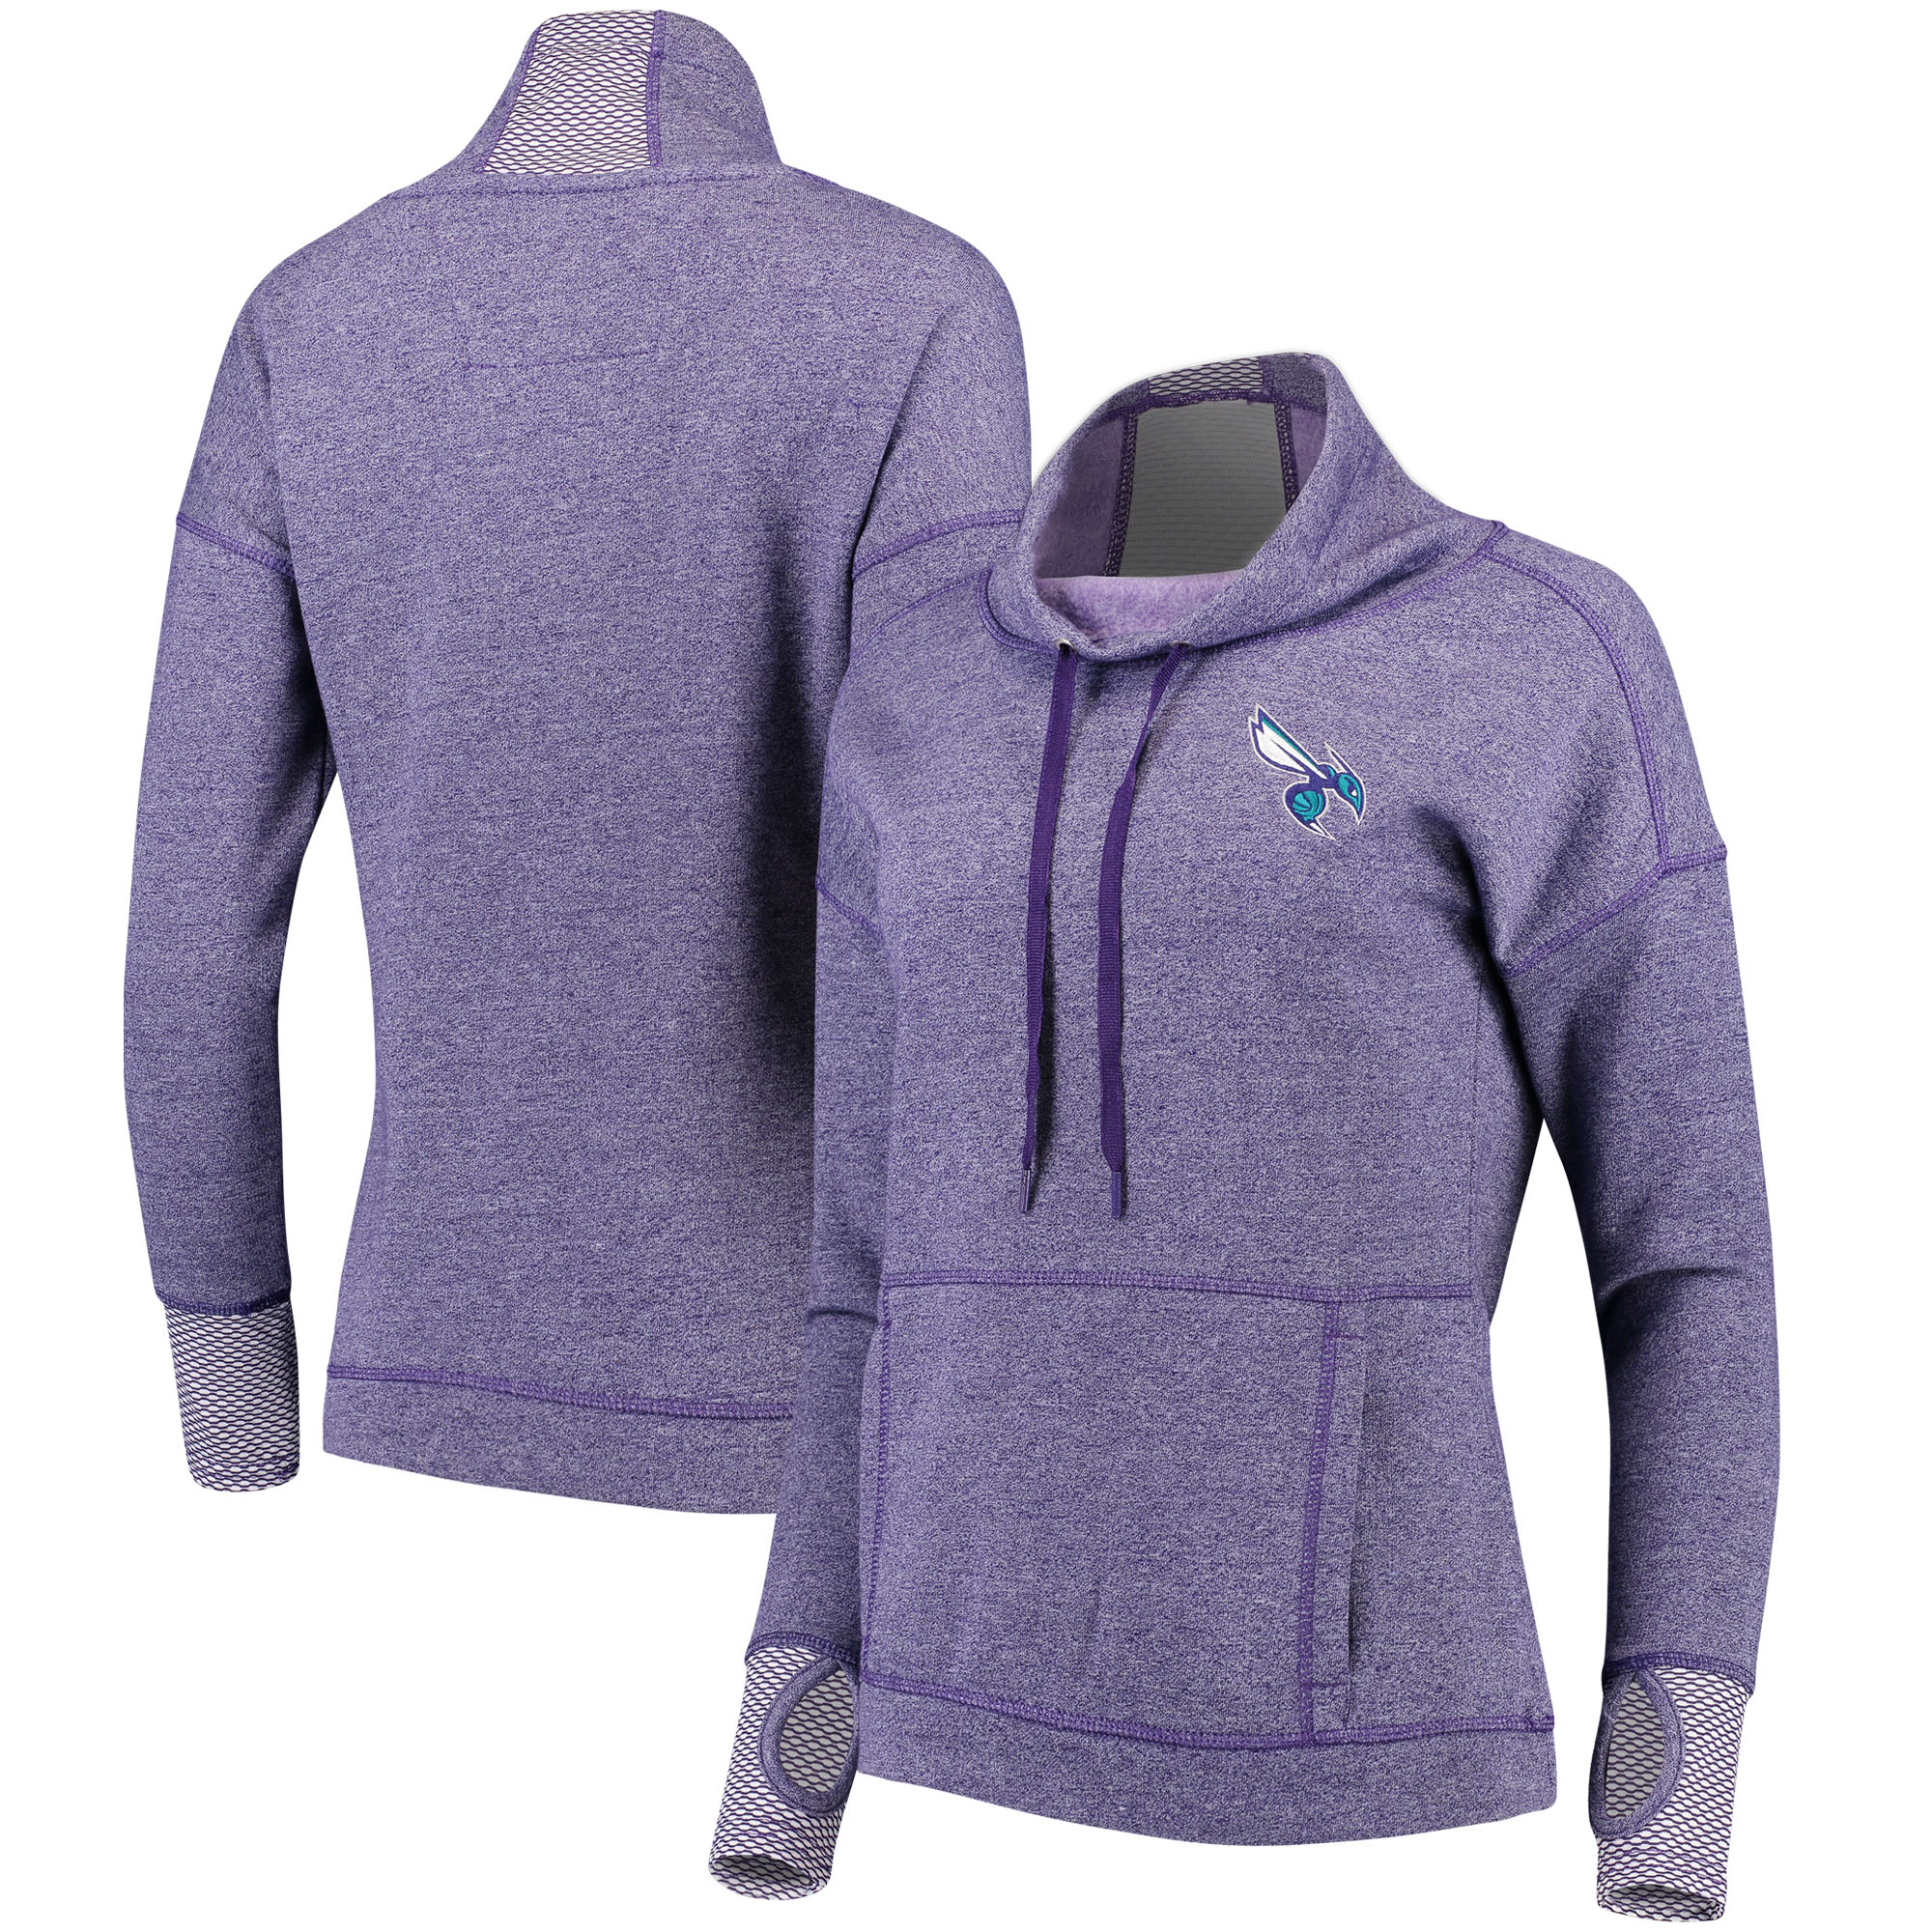 Charlotte Hornets Antigua Women's Snap Cowl Neck Pullover Sweatshirt - Heathered Purple